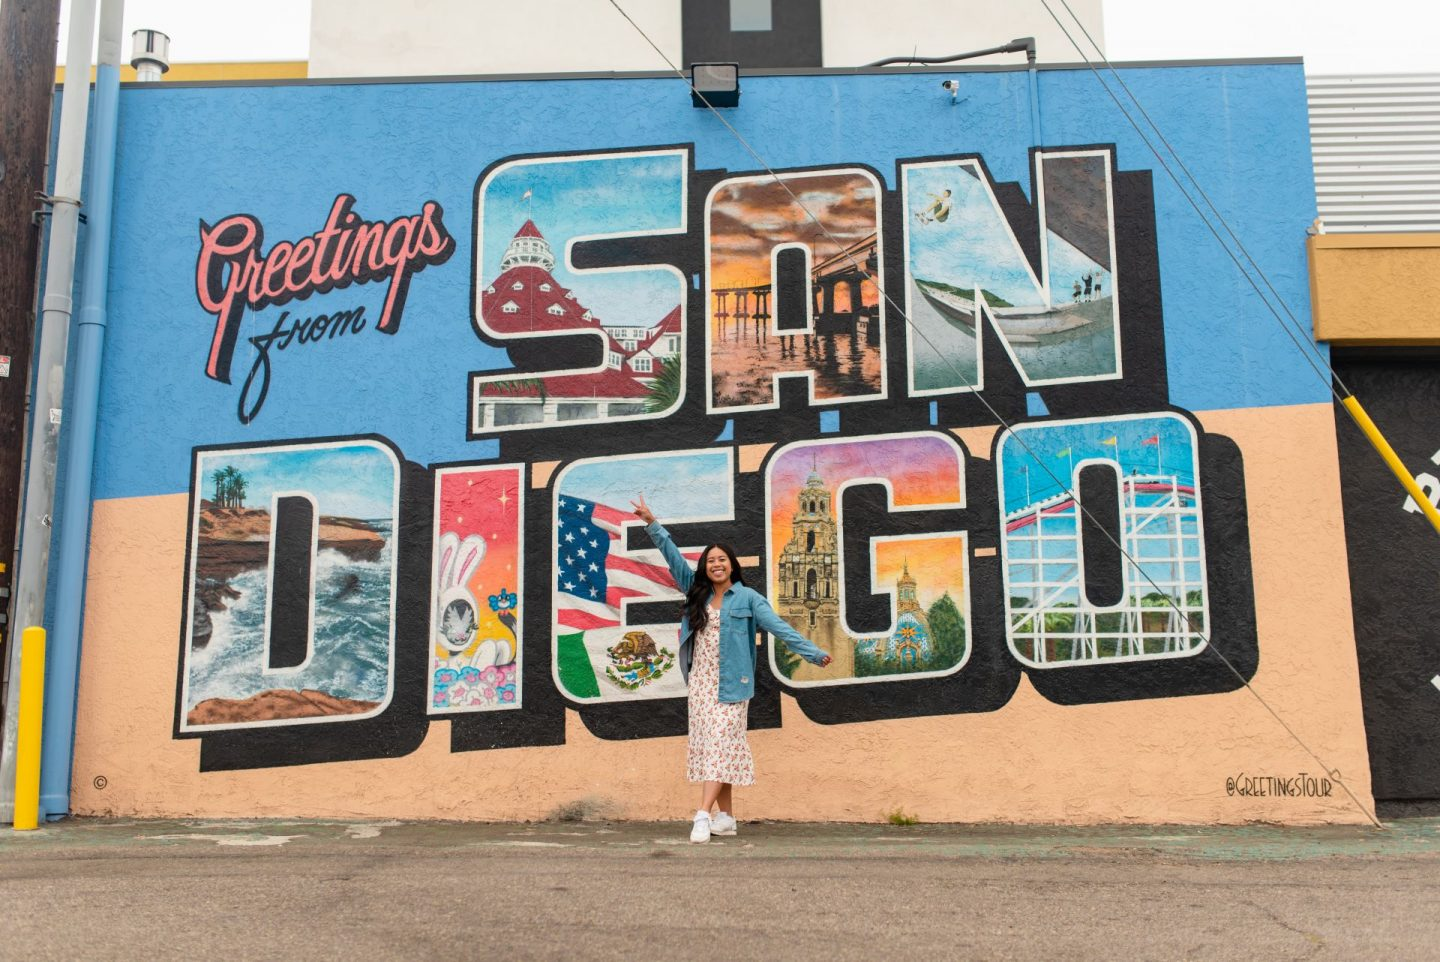 Greetings from San Diego mural - most instagram worthy spots in San Diego - best photo spots in San Diego California - Emma's Edition - www.emmasedition.com